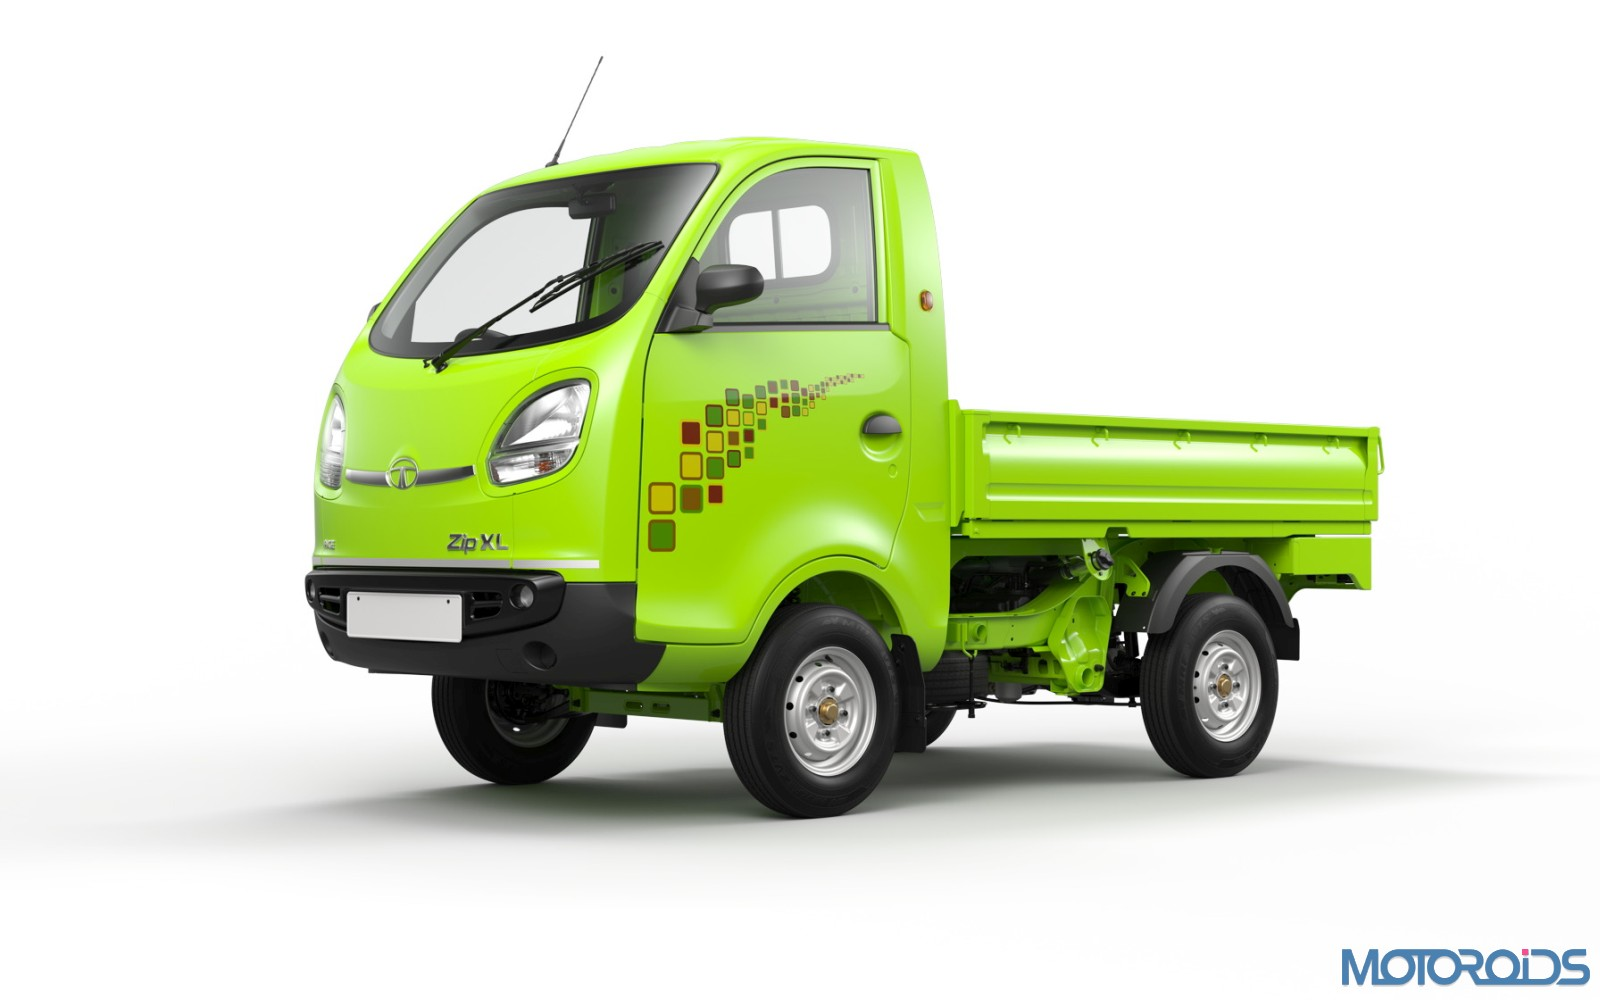 New Tata Motors Xl Small Commercial Cargo Vehicle Range